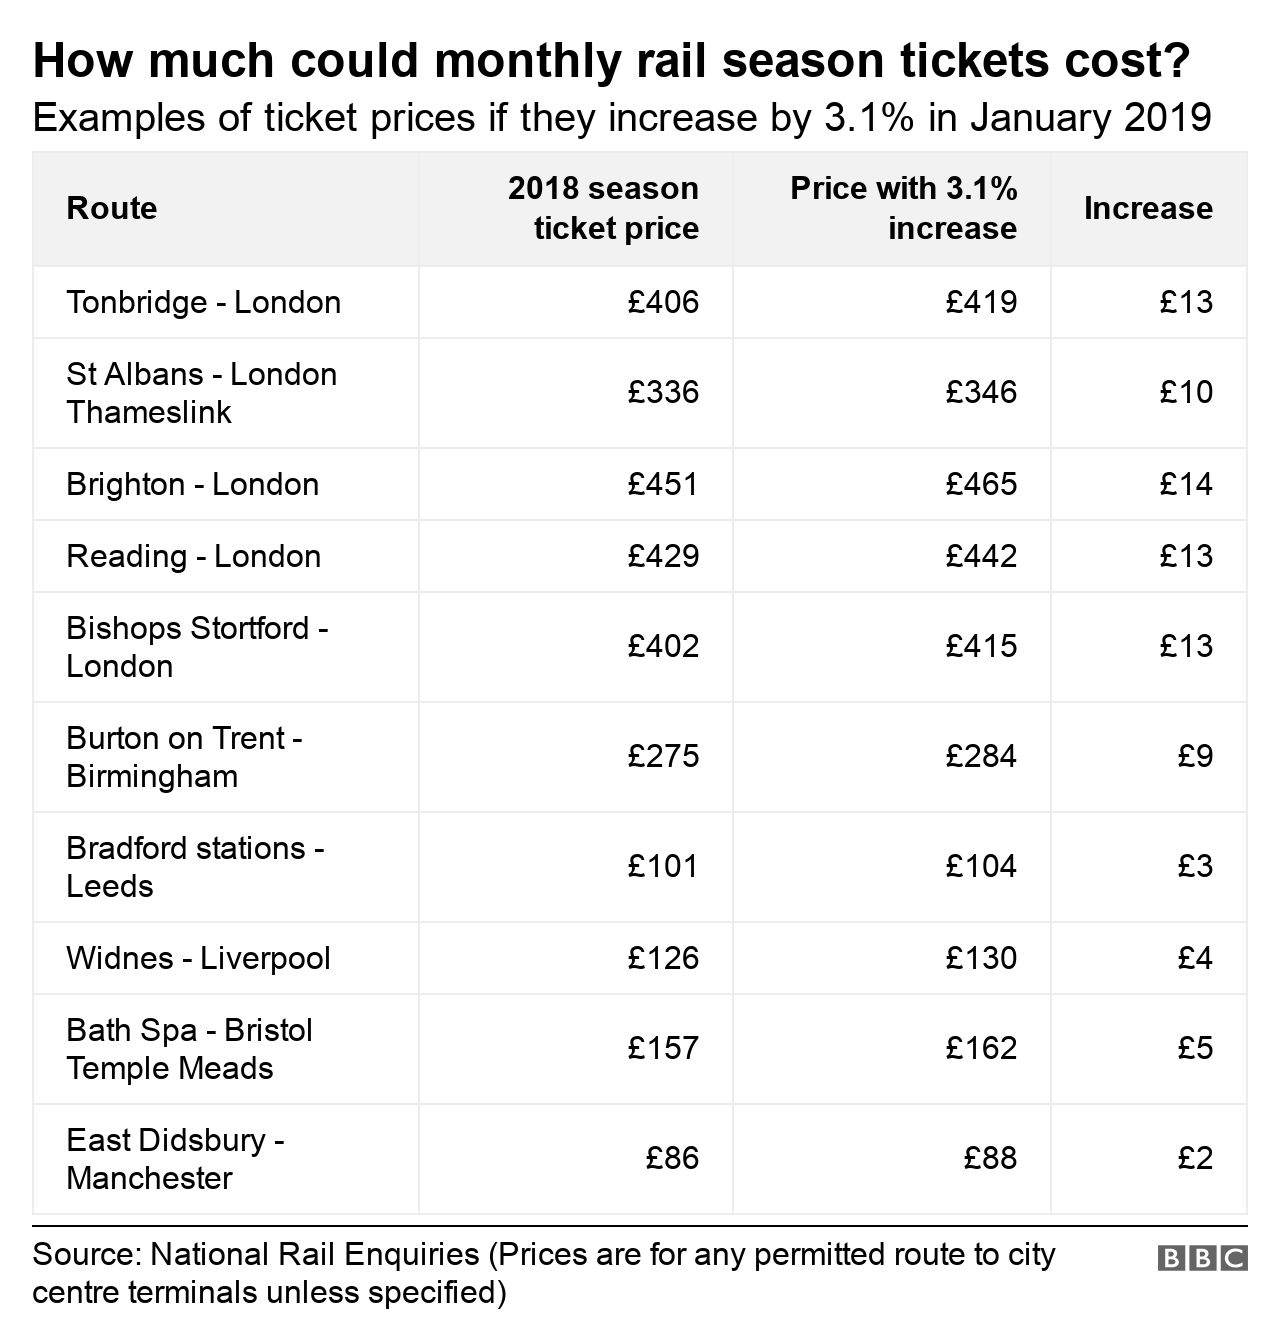 Table showing increases in season ticket prices